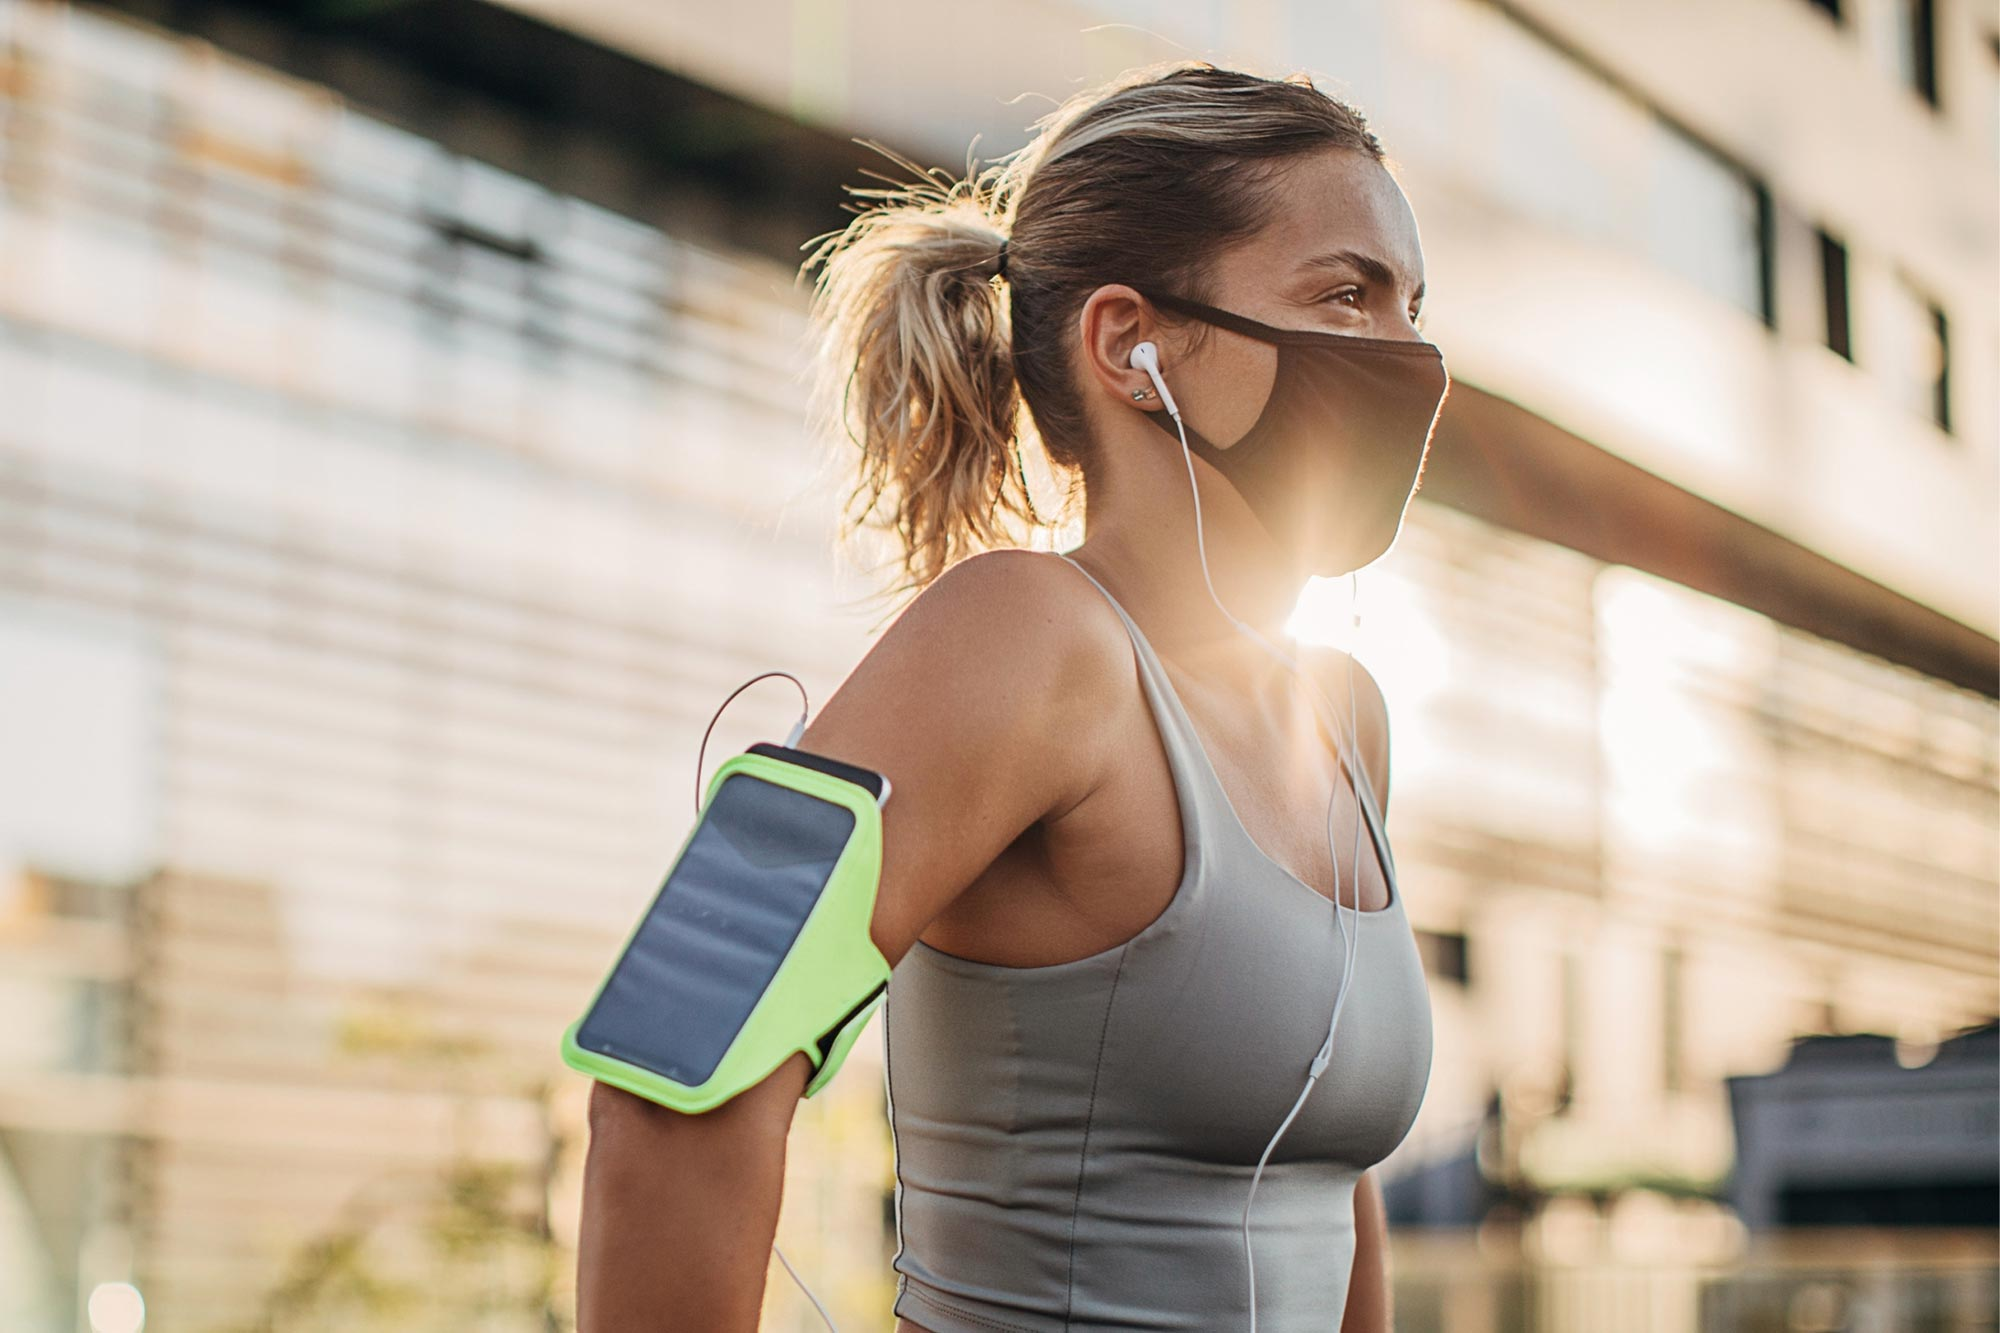 British Medical Journal: Cloth Face Covering Reduces Exercise Performance and Physical Capacity